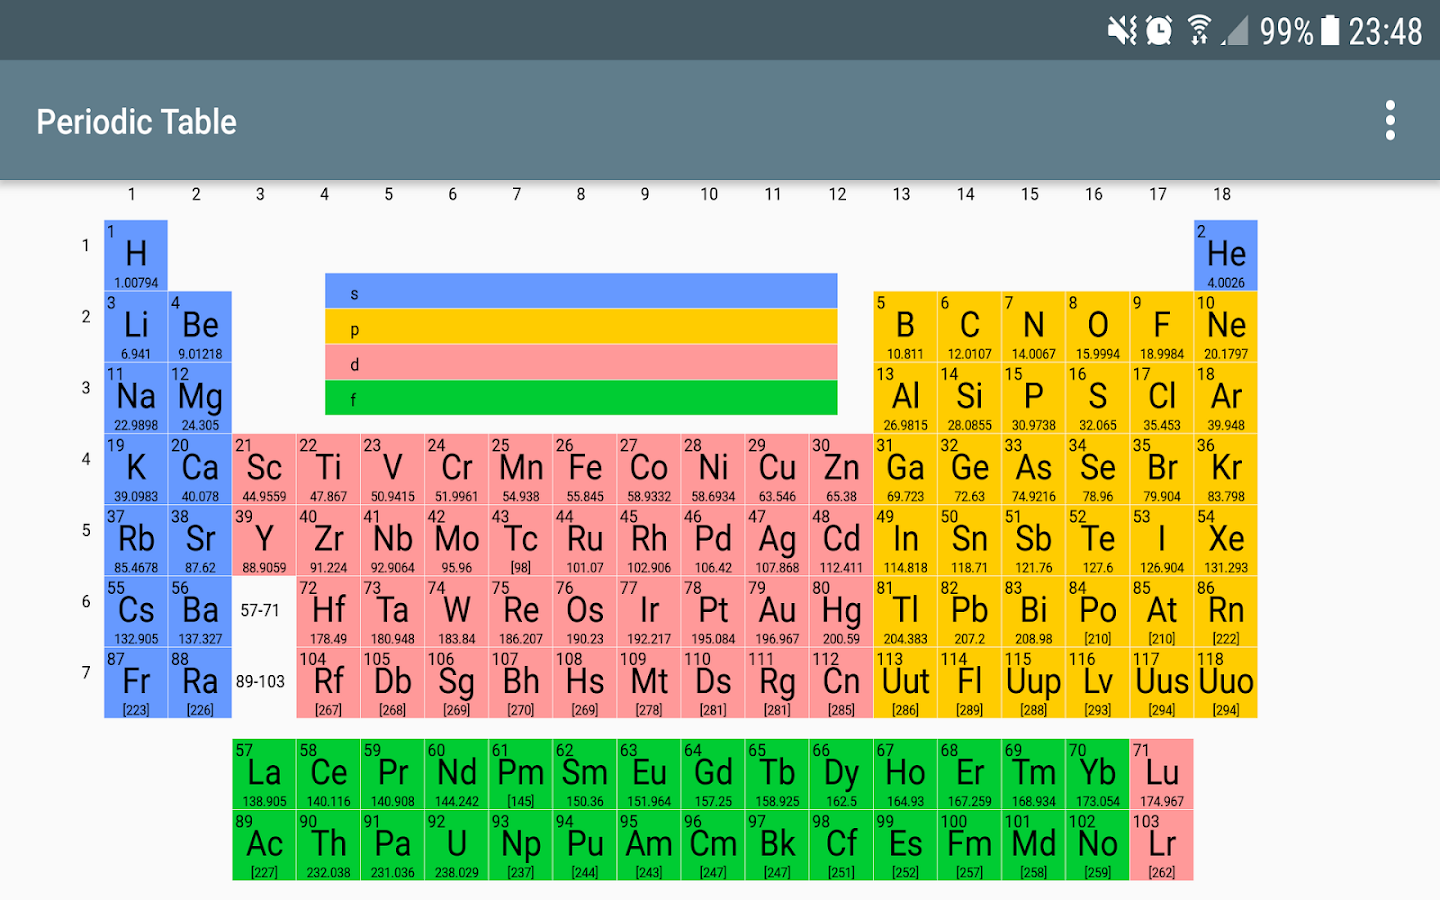 Periodic table of elements pro 20 apk download android education apps periodic table of elements pro 20 screenshot 18 urtaz Choice Image